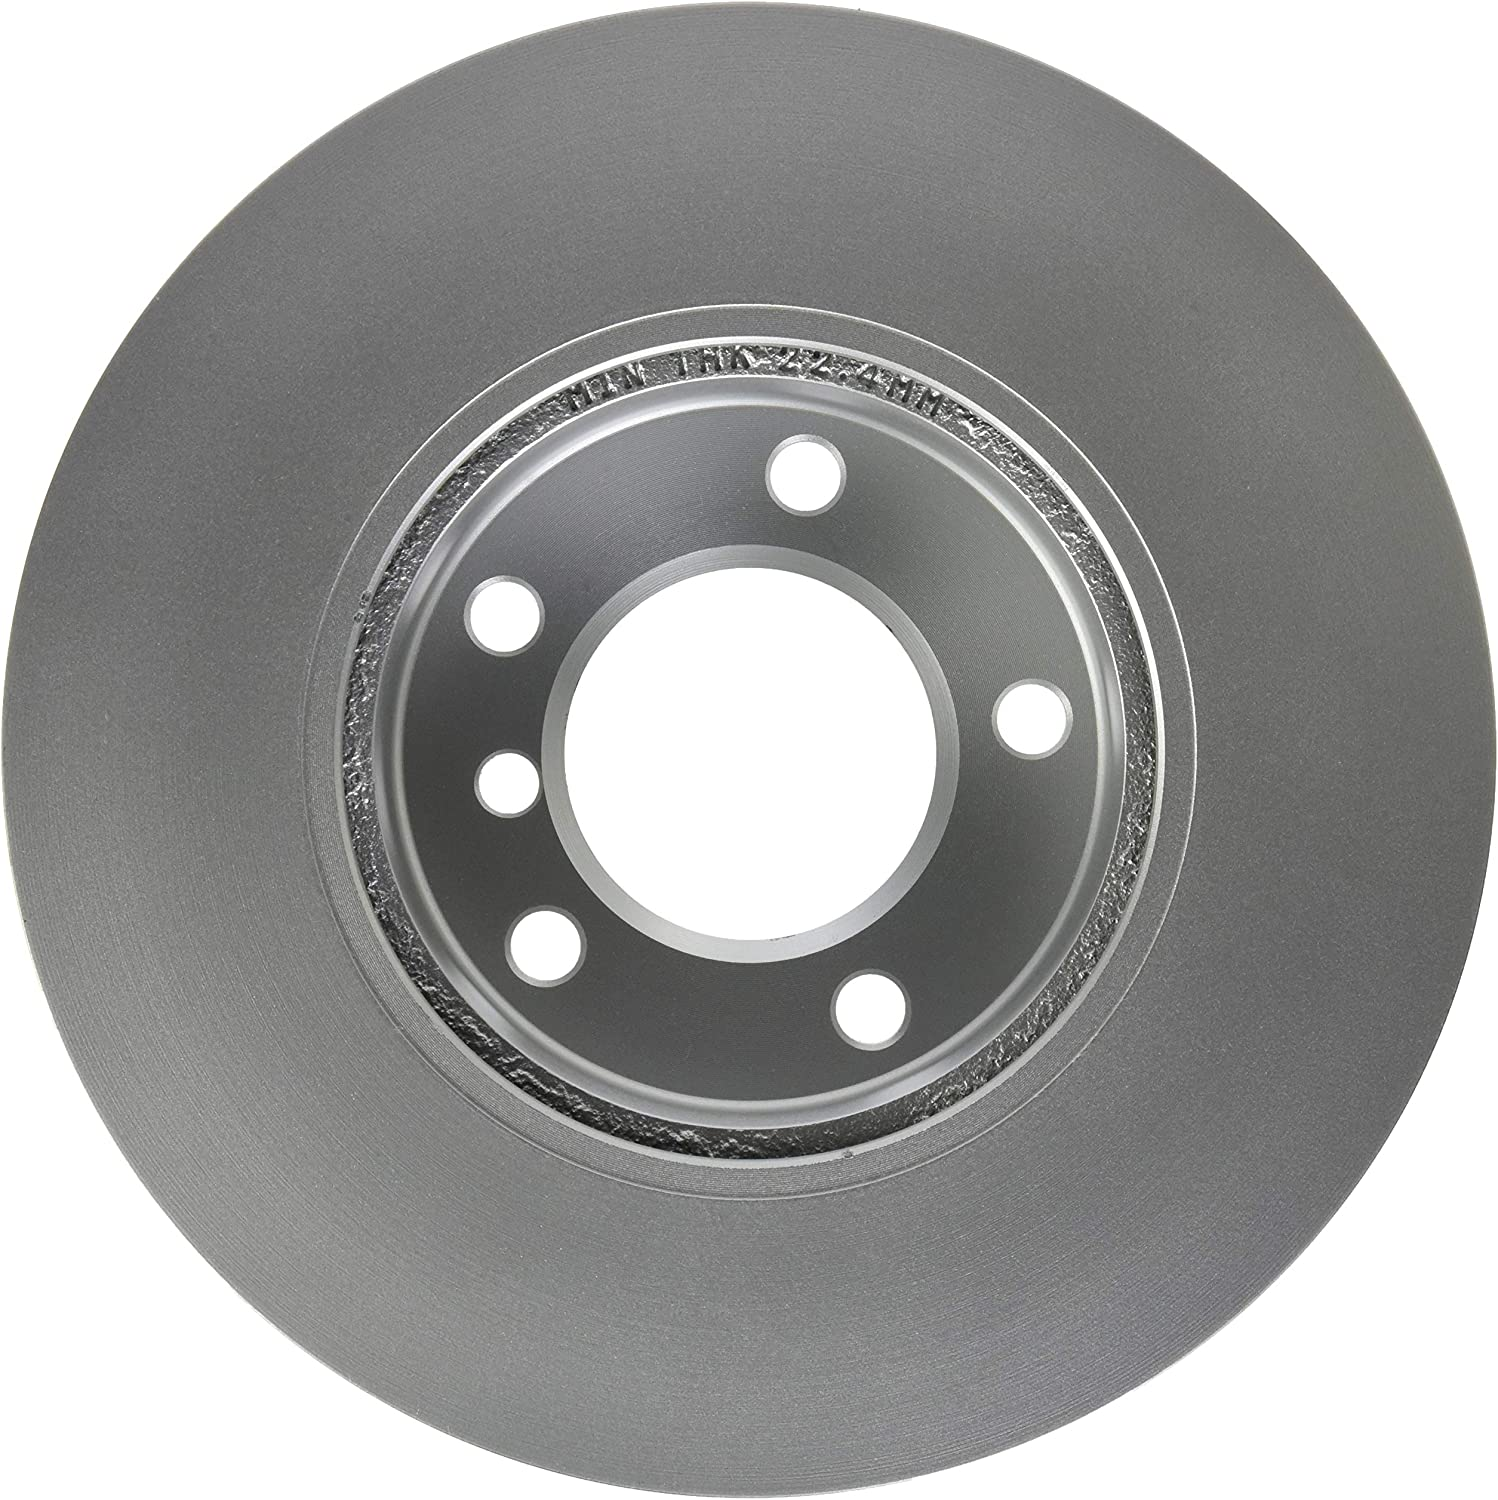 Raybestos 980482FZN Rust Prevention discount Rotor Max 44% OFF Technology Brak Coated